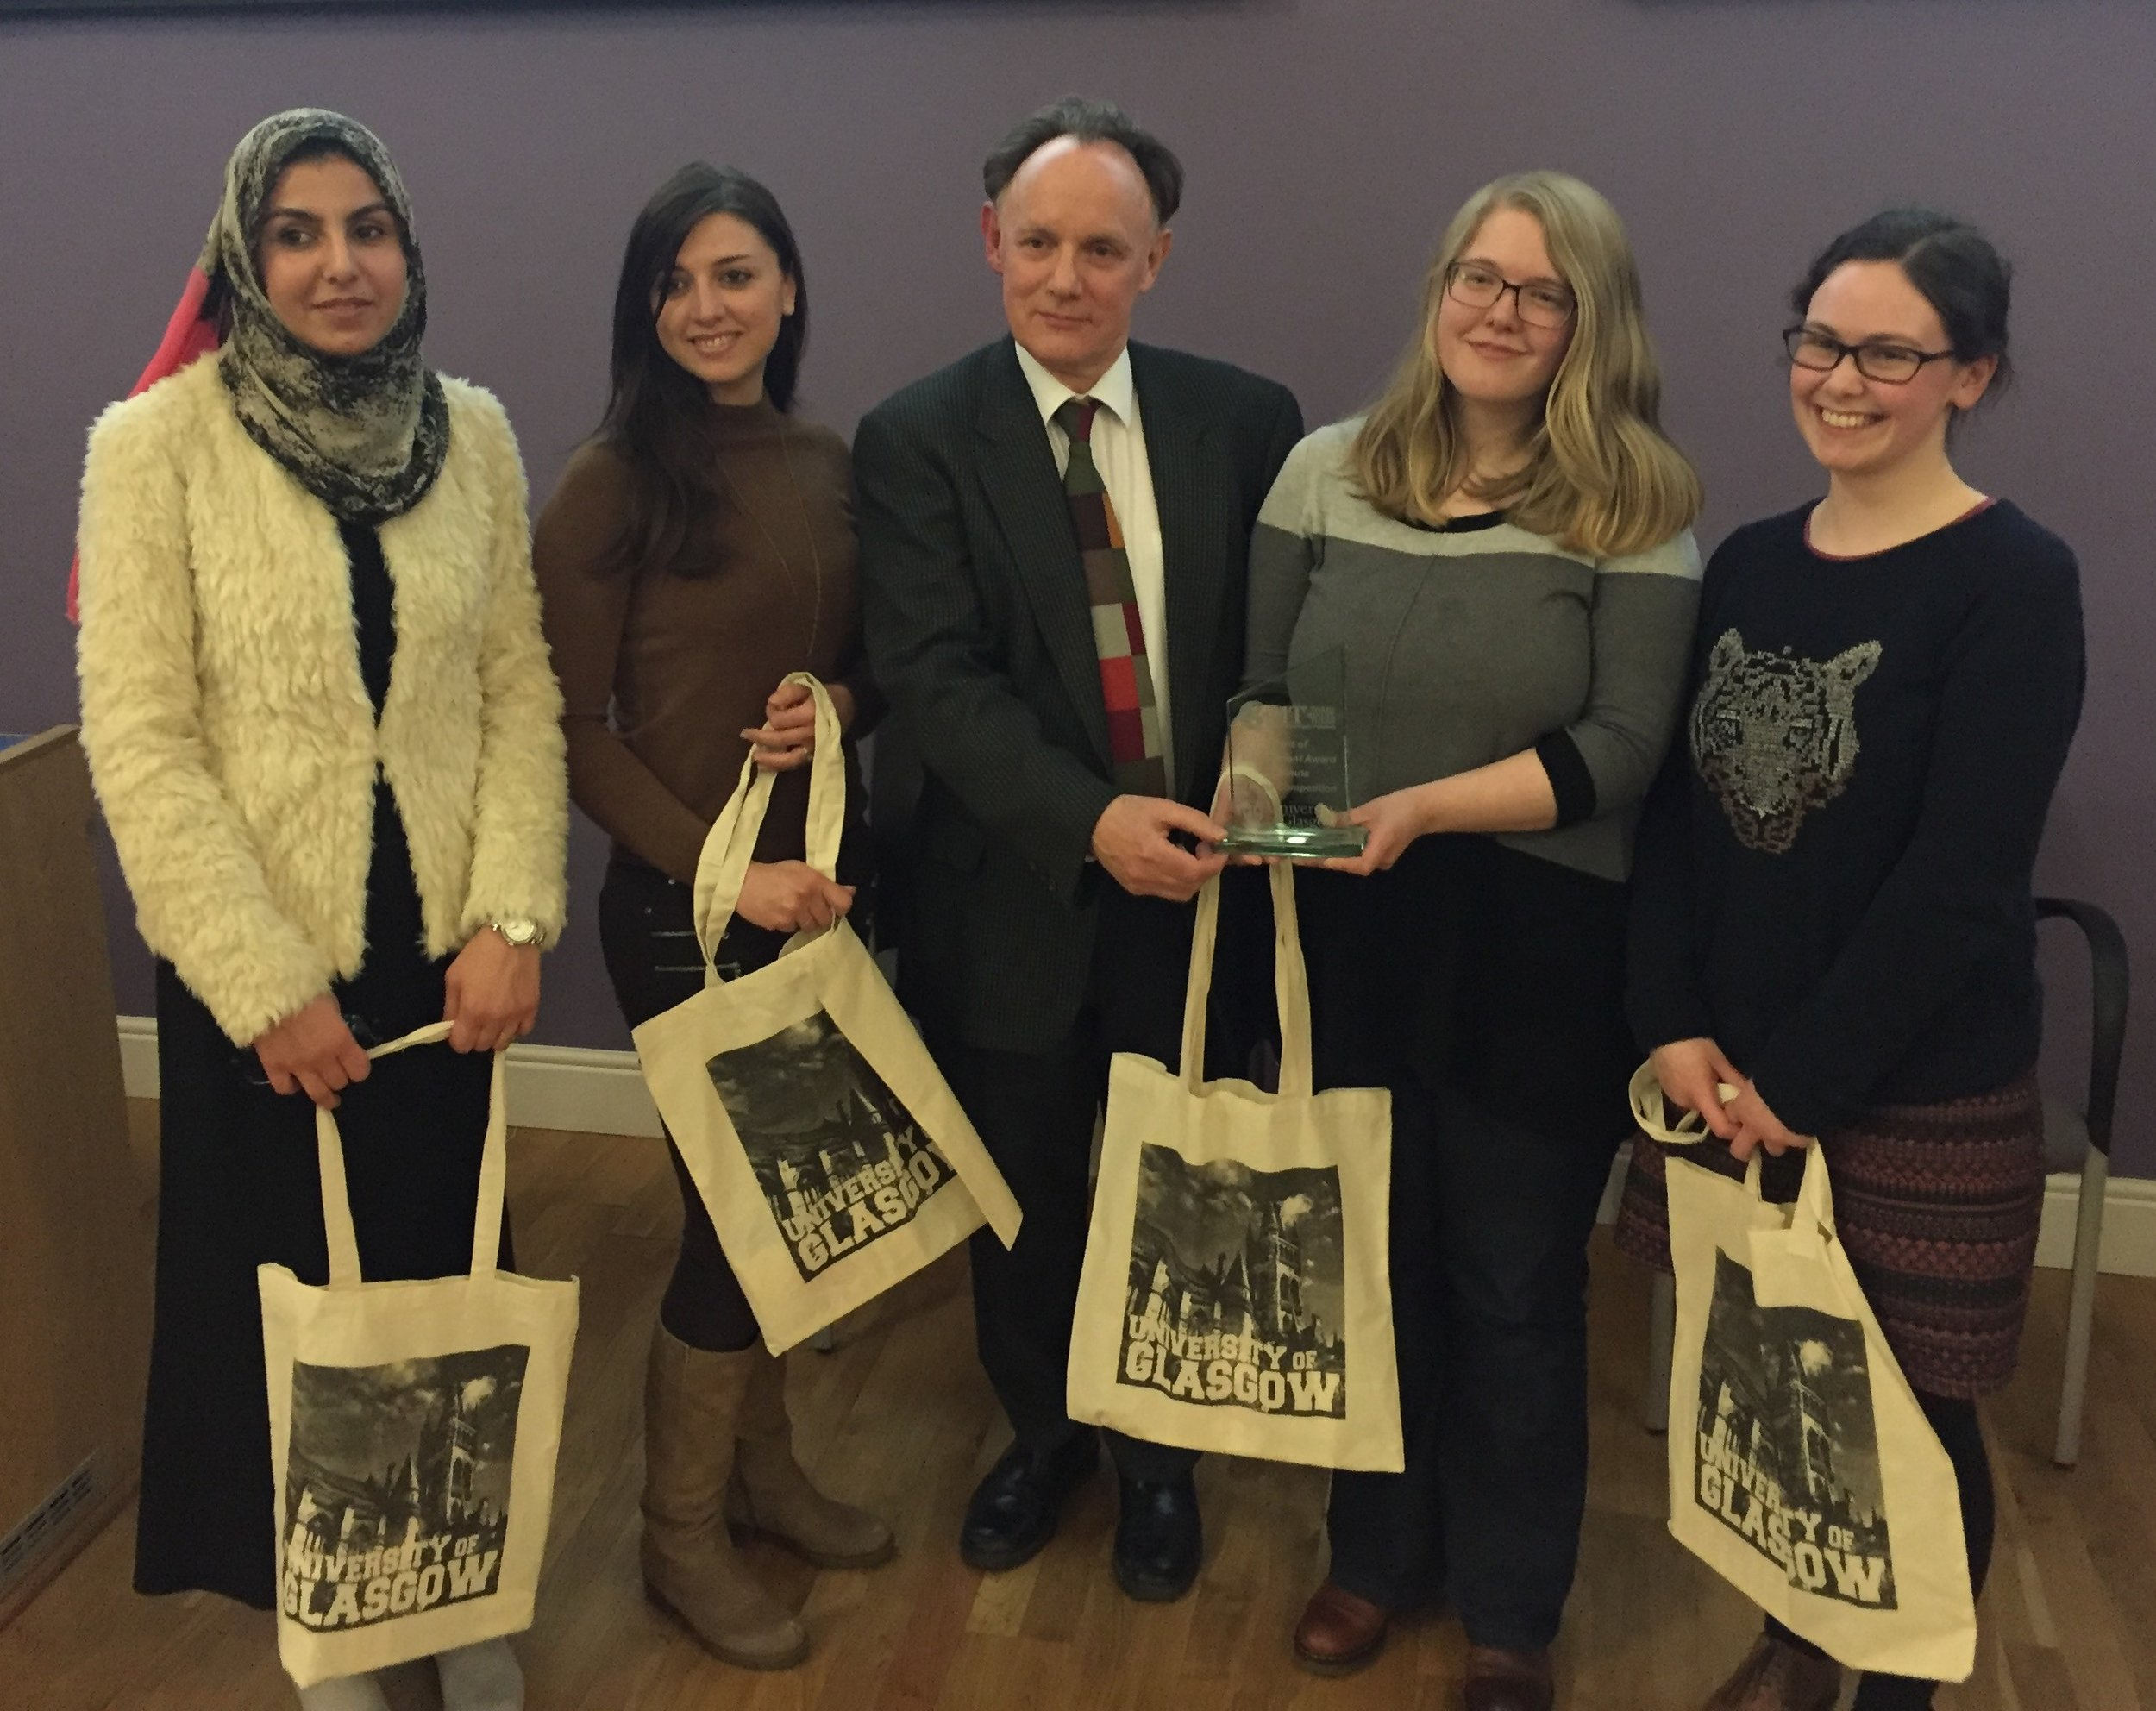 3MT Humanities contestants with their UofG branded bags and 2016 Humanities winner Ruth Turner holding her trophy